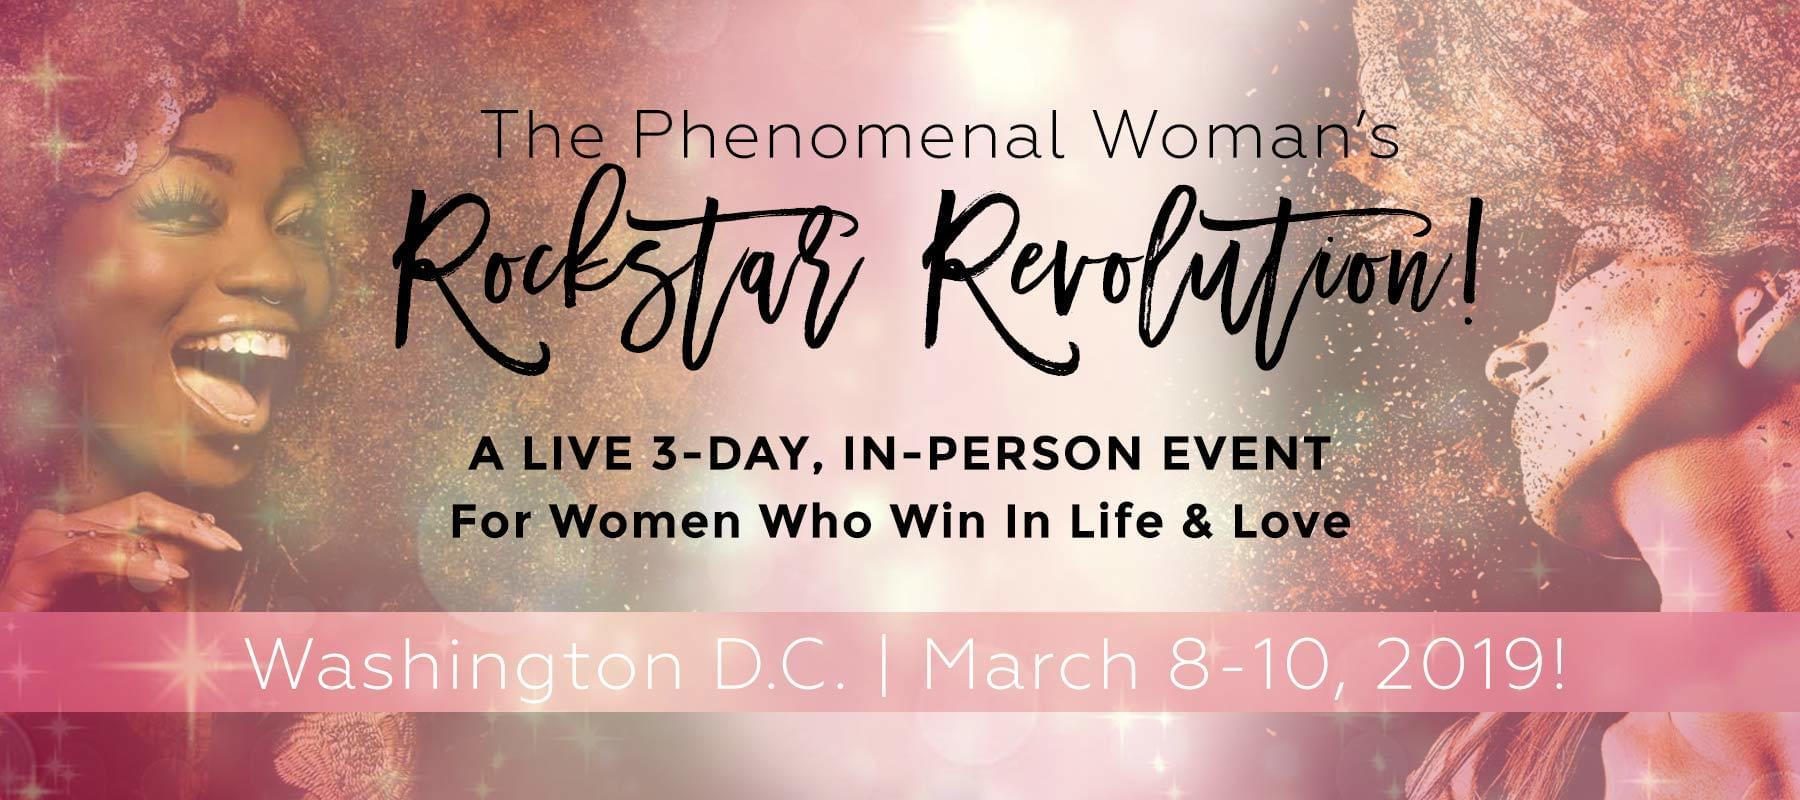 The Phenomenal Woman's Rockstar Revolution! A live 3-day, in-person event for women who win in life and love. The Wink Hotel, Washington DC March 7-9, 2018